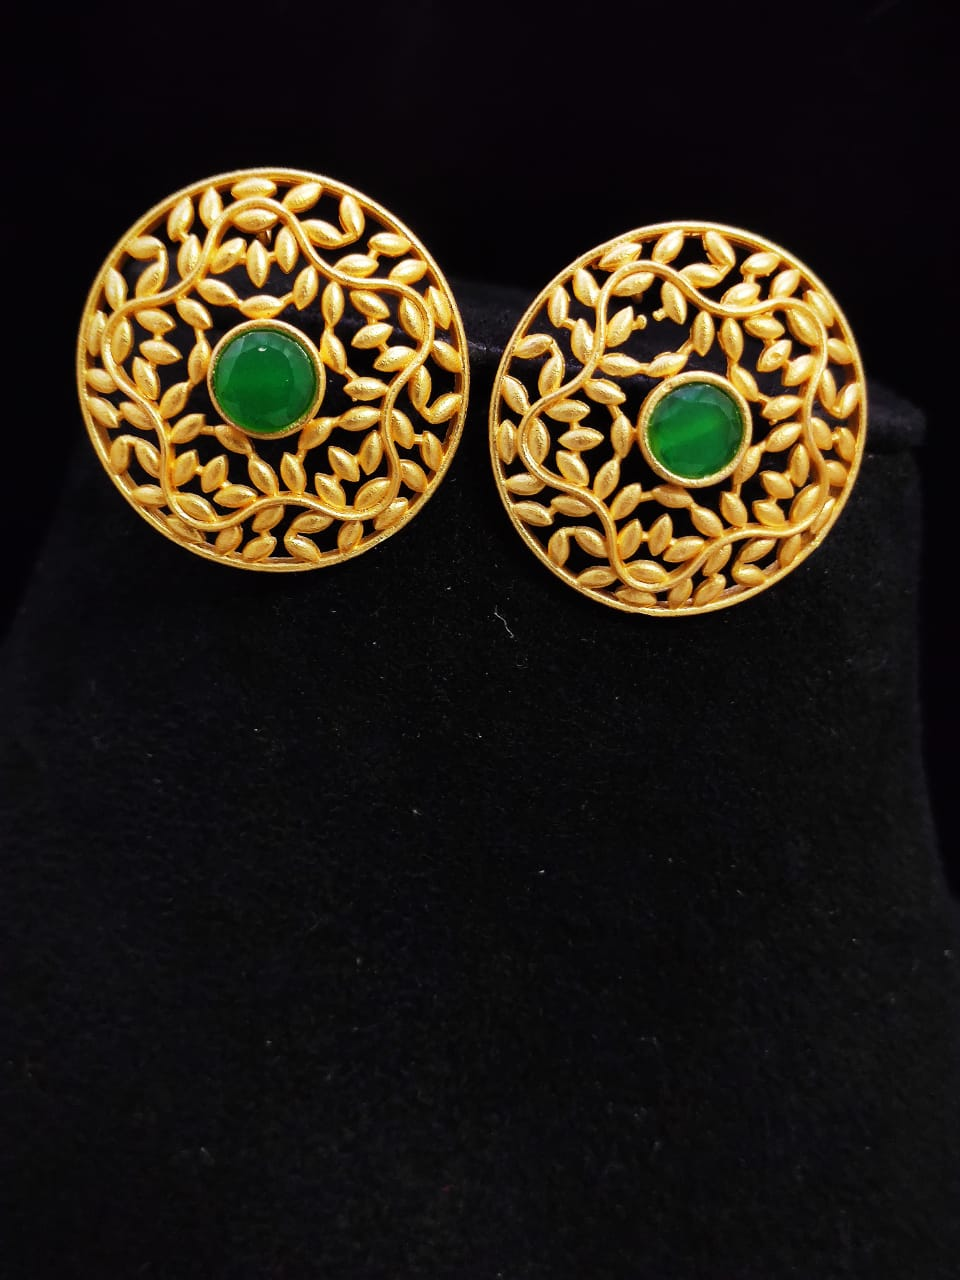 Stylish Matt Golden Stone Studd Earrings